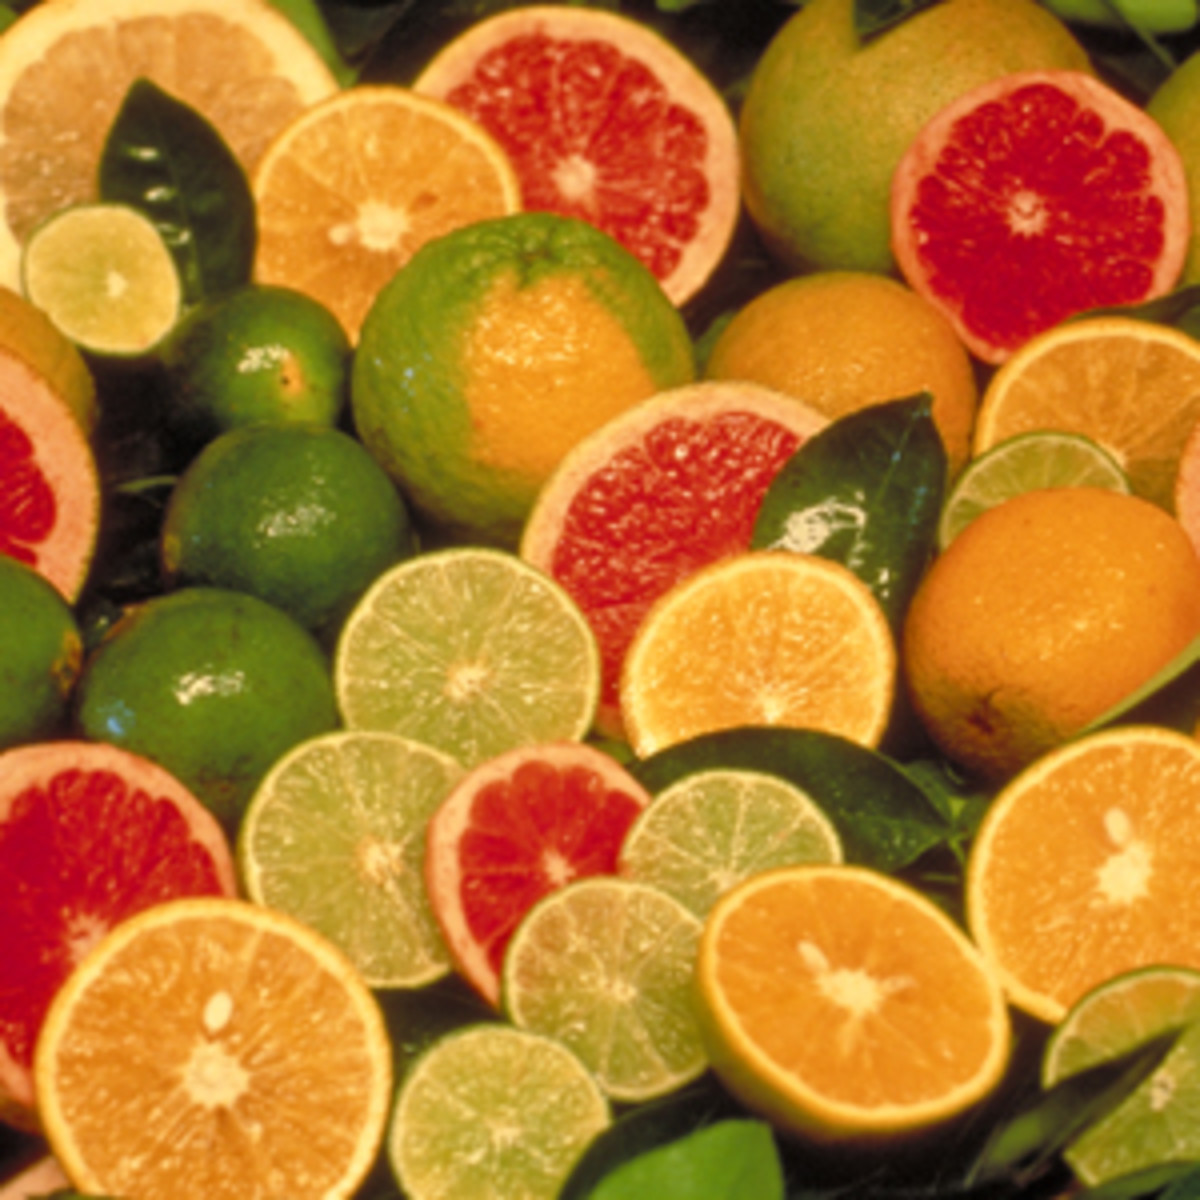 Avoid citrus fruits